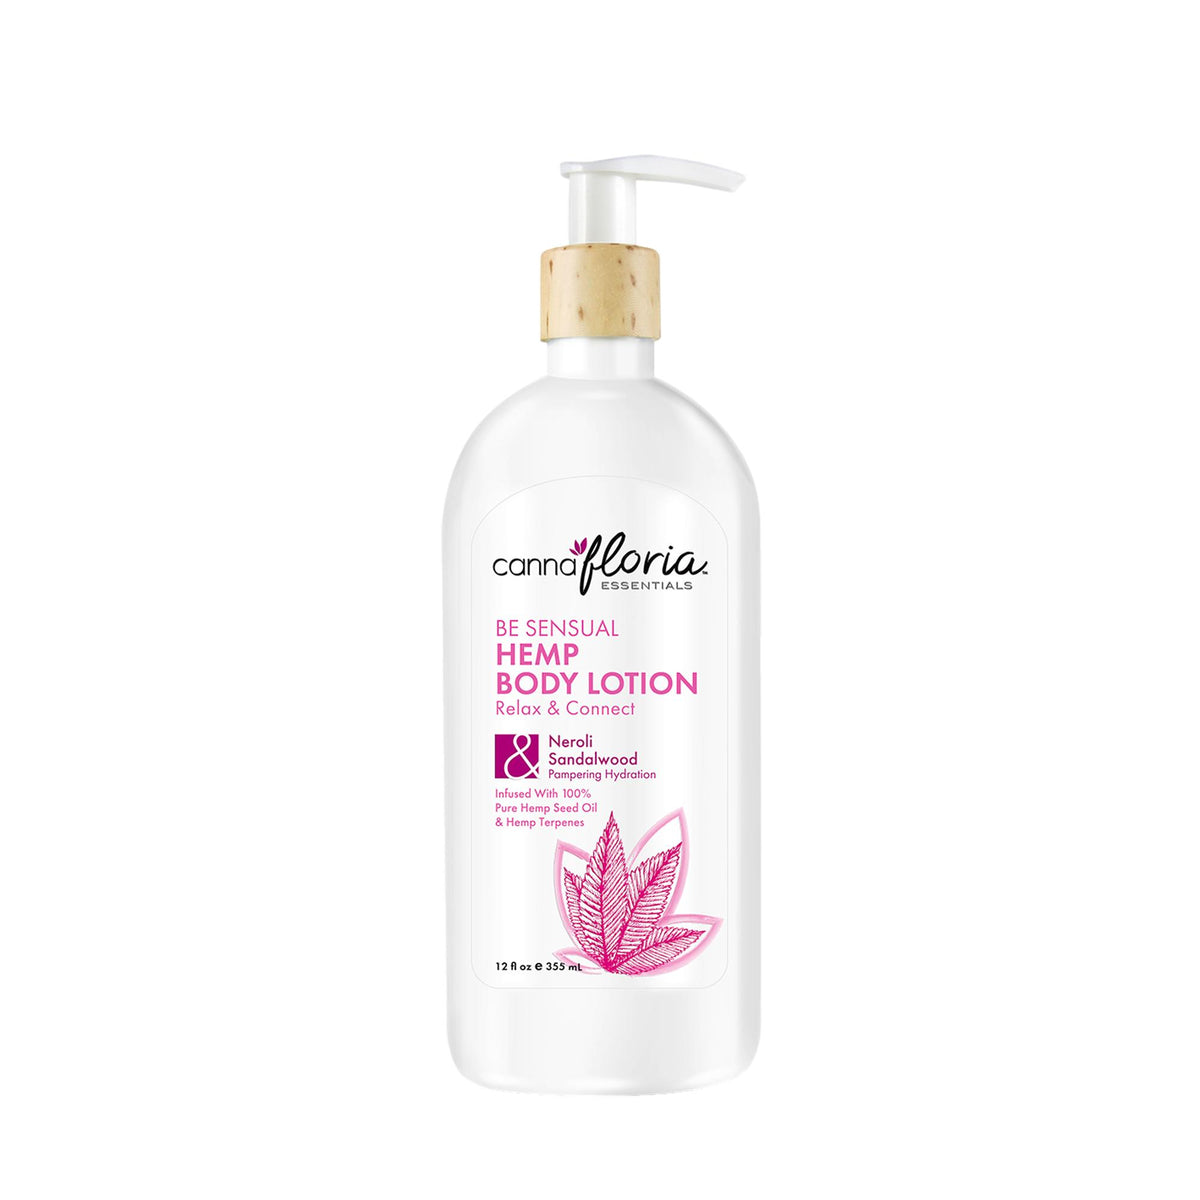 Cannafloria Hemp Body Lotion, Be Sensual